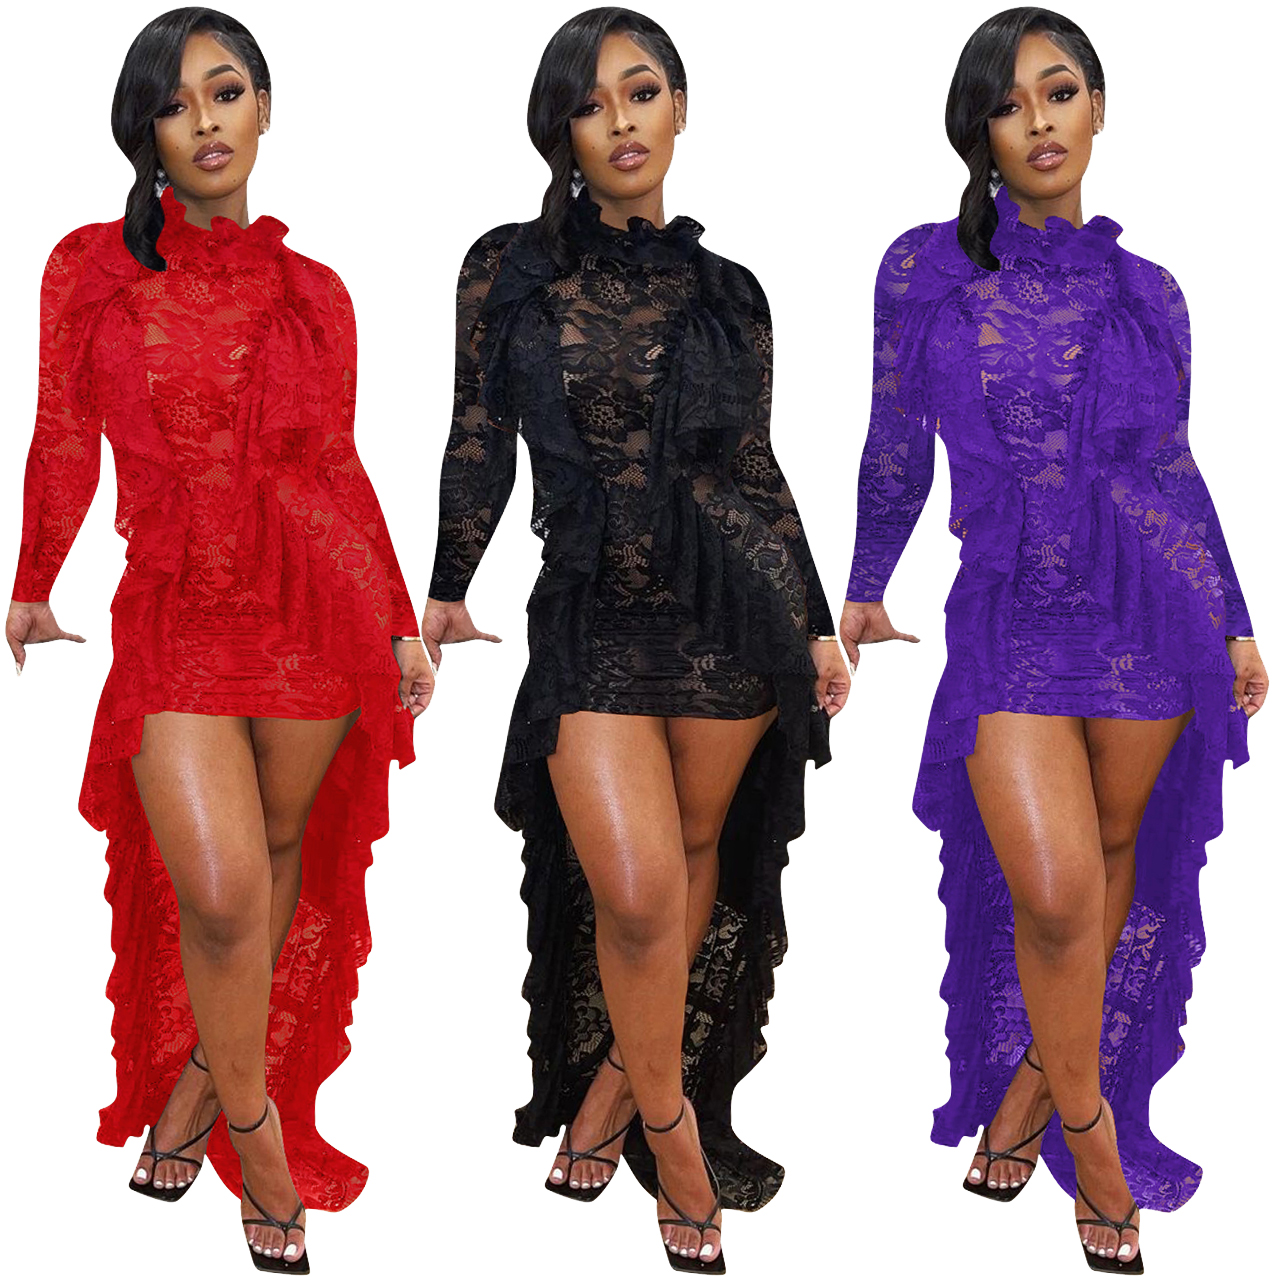 Fashion Ruffle-neck Asymmetrical Style Elegant Faux Two-piece Lace Casual Party Dresses Long Sleeve Floor Women Cocktail Dress